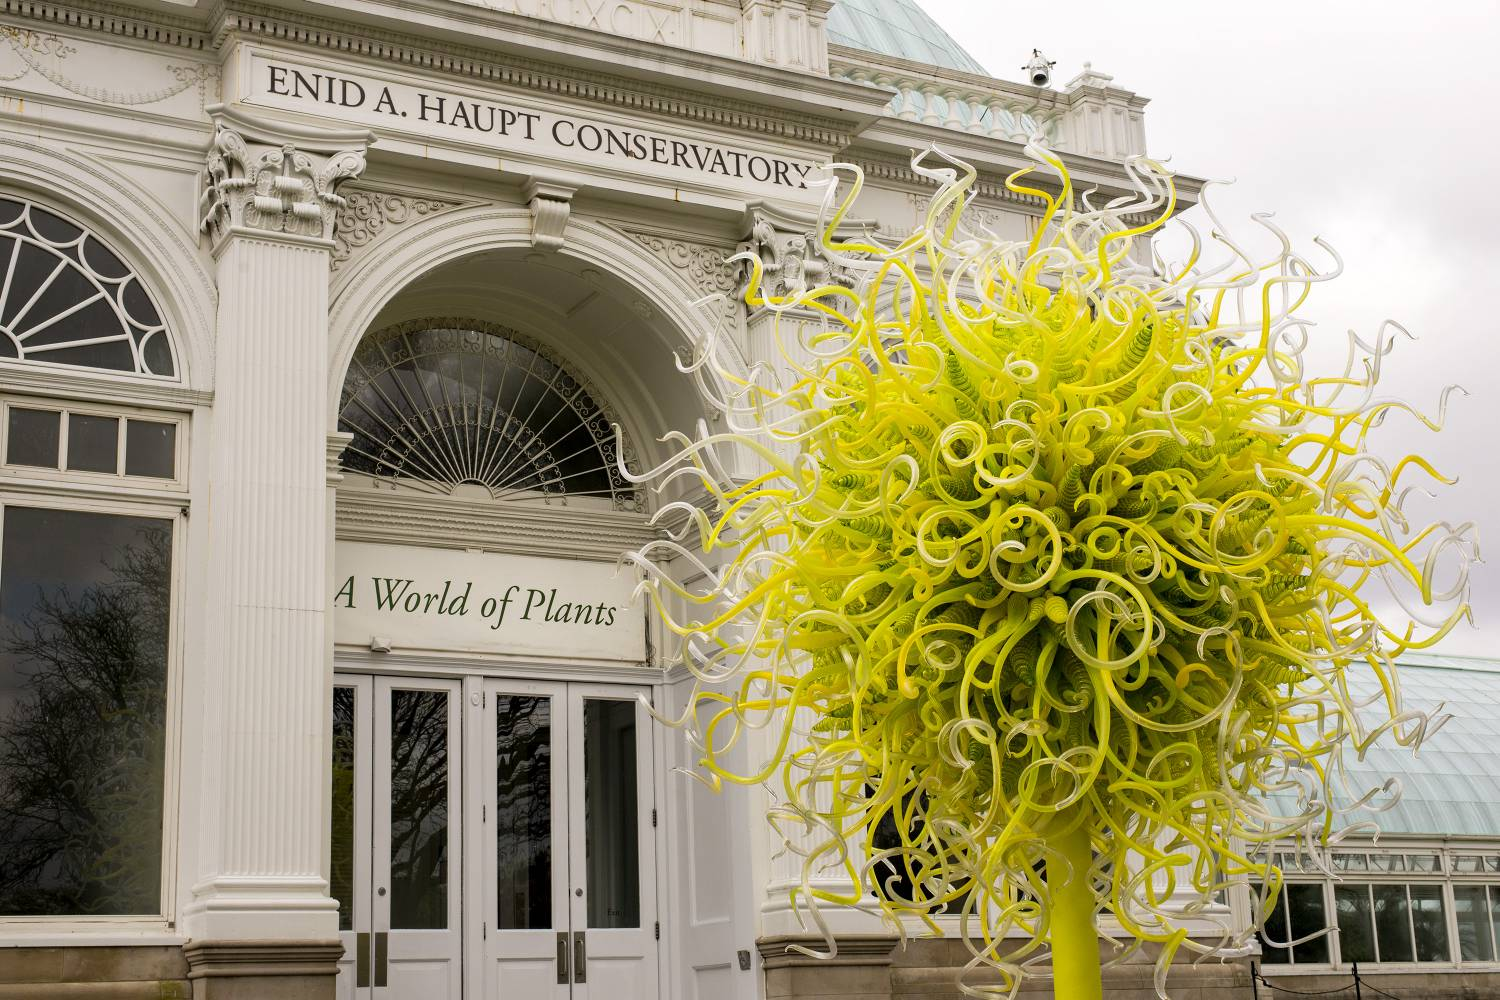 Dale chihuly at the new york botanical garden attractions - Restaurants near bronx botanical garden ...